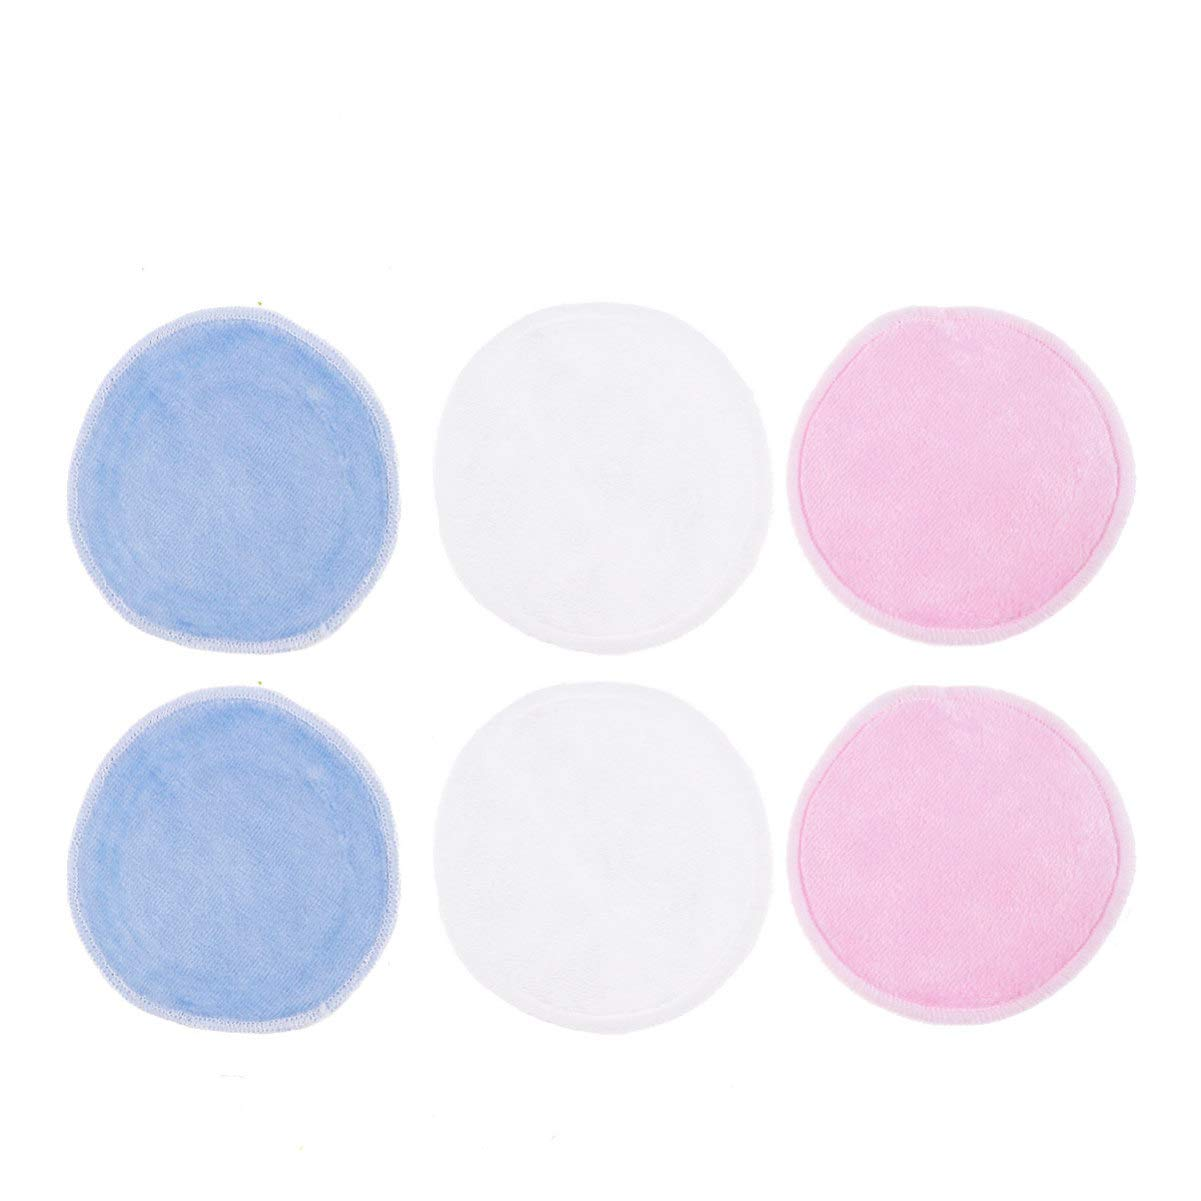 Beaupretty 17PCS Makeup Remover Complete Free Shipping Pads Cotton Cheap SALE Start Rounds with Bamb Bag